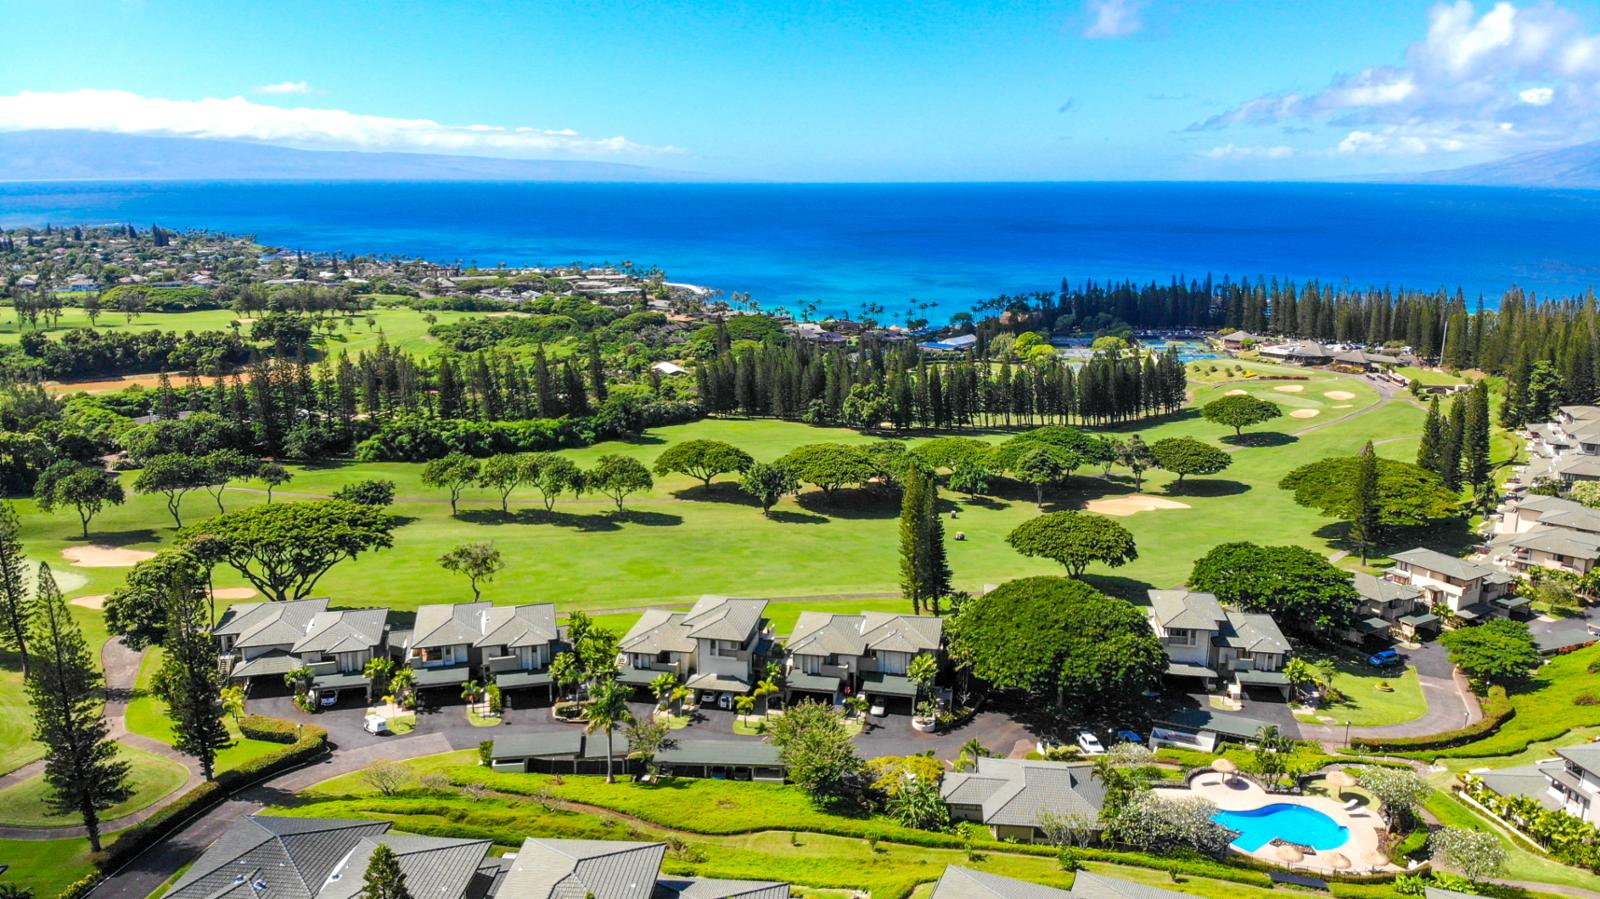 Are you ready to live like this in the exclusive Kapalua Golf Villas?